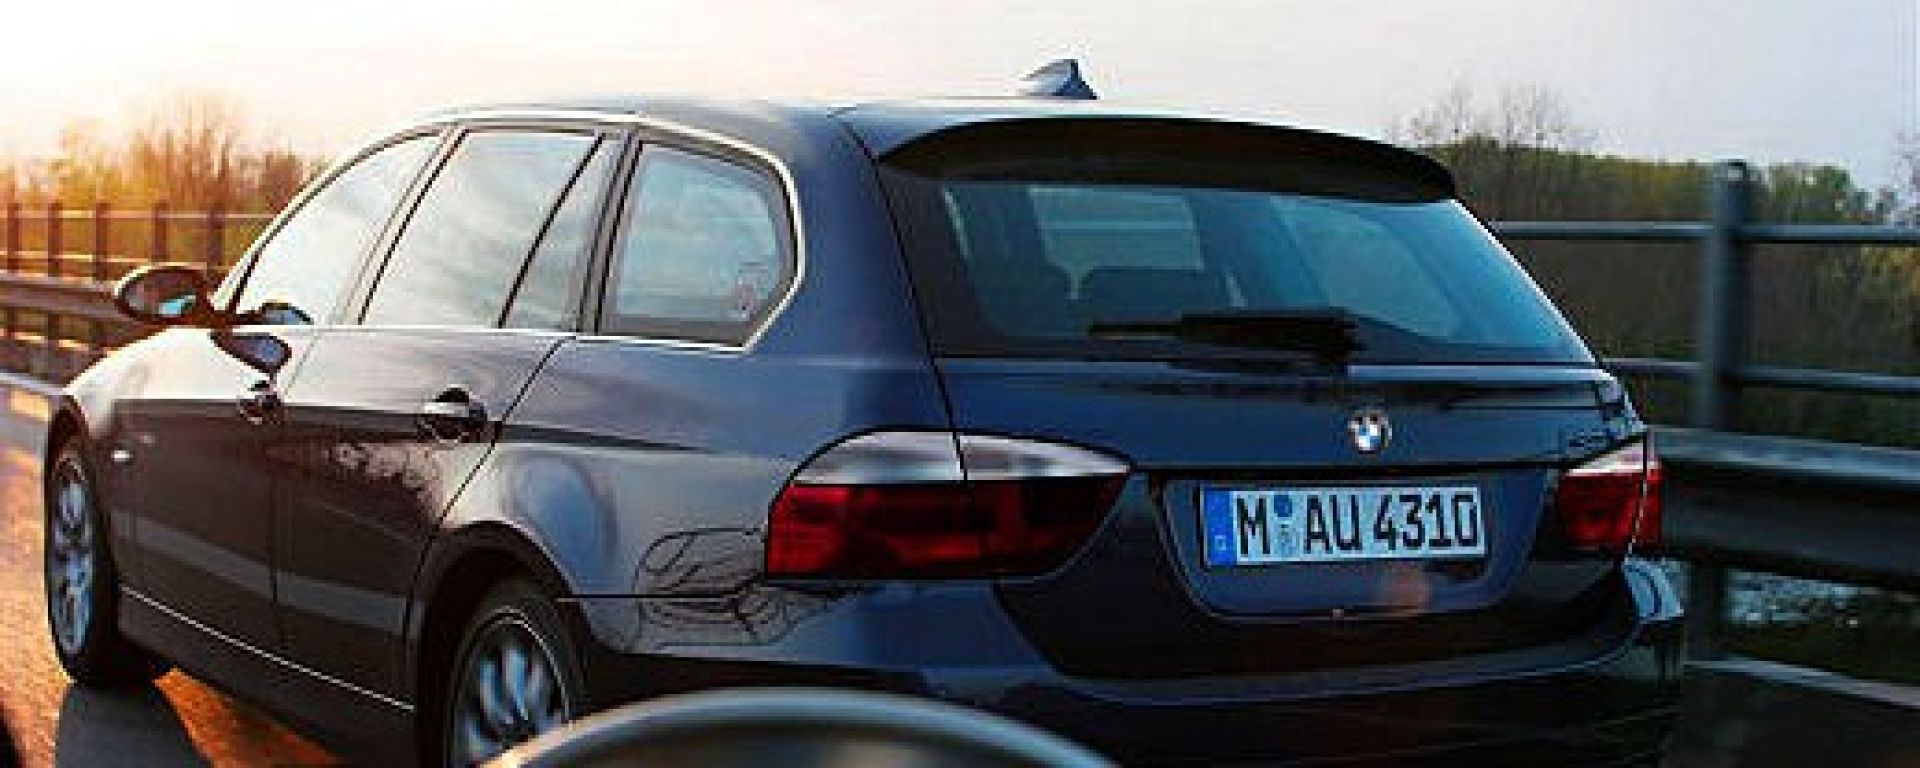 Bmw Serie 3 Touring 2005